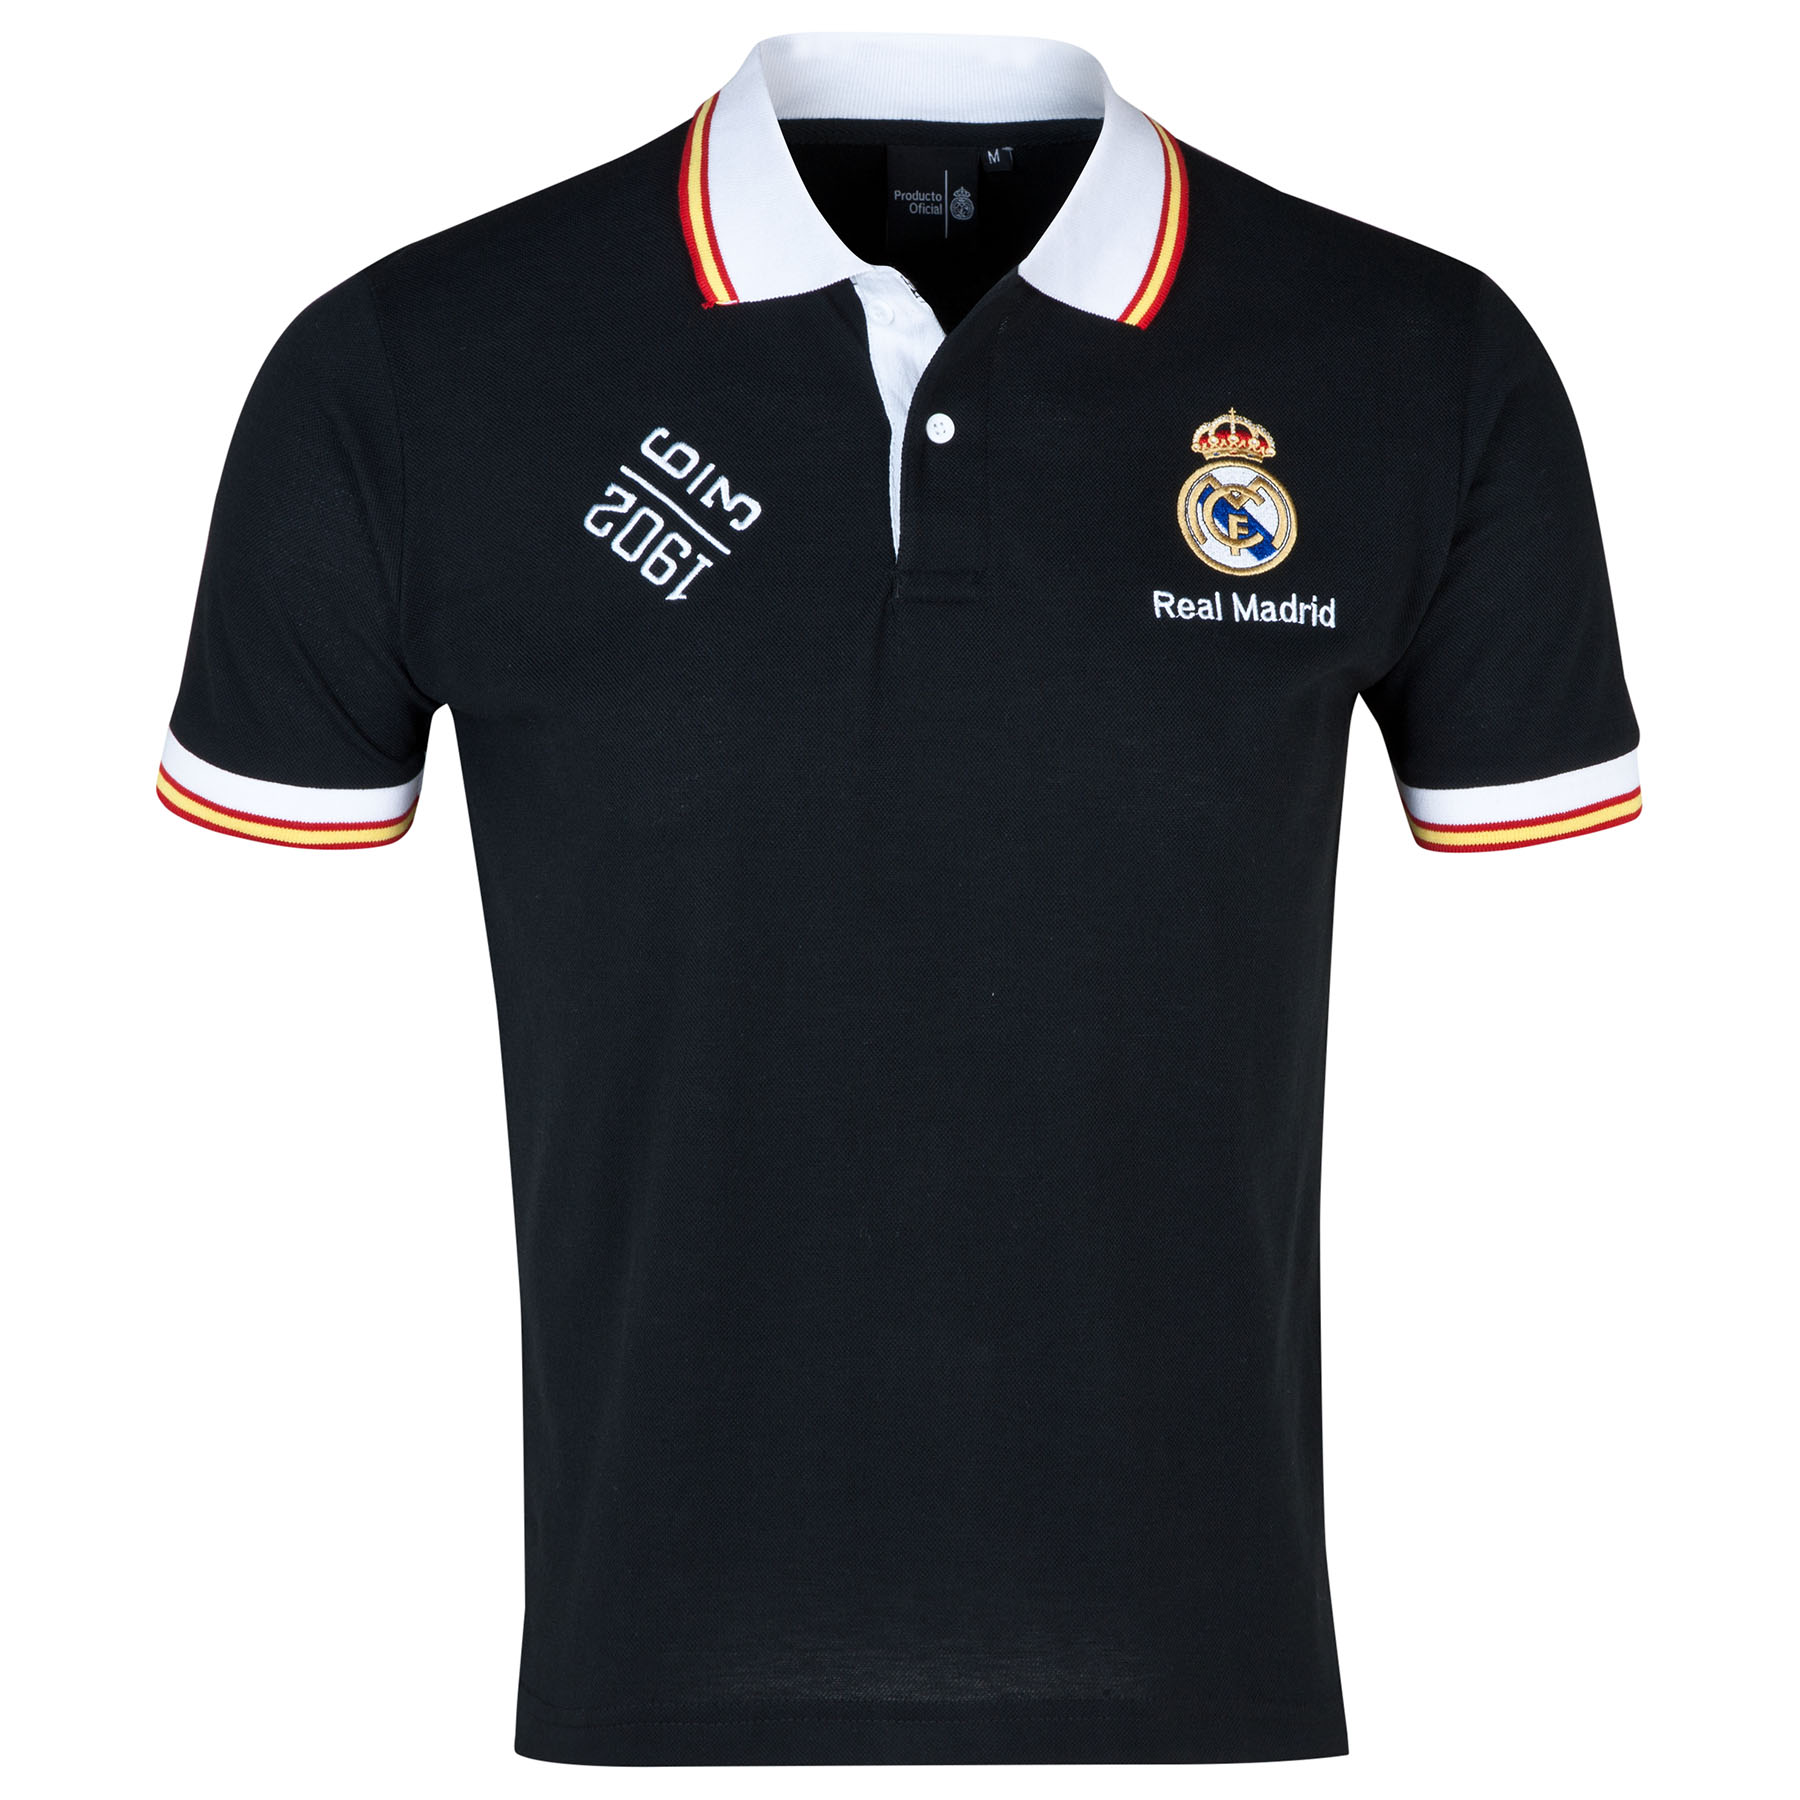 Real Madrid Fan Polo Shirt - Black - Mens